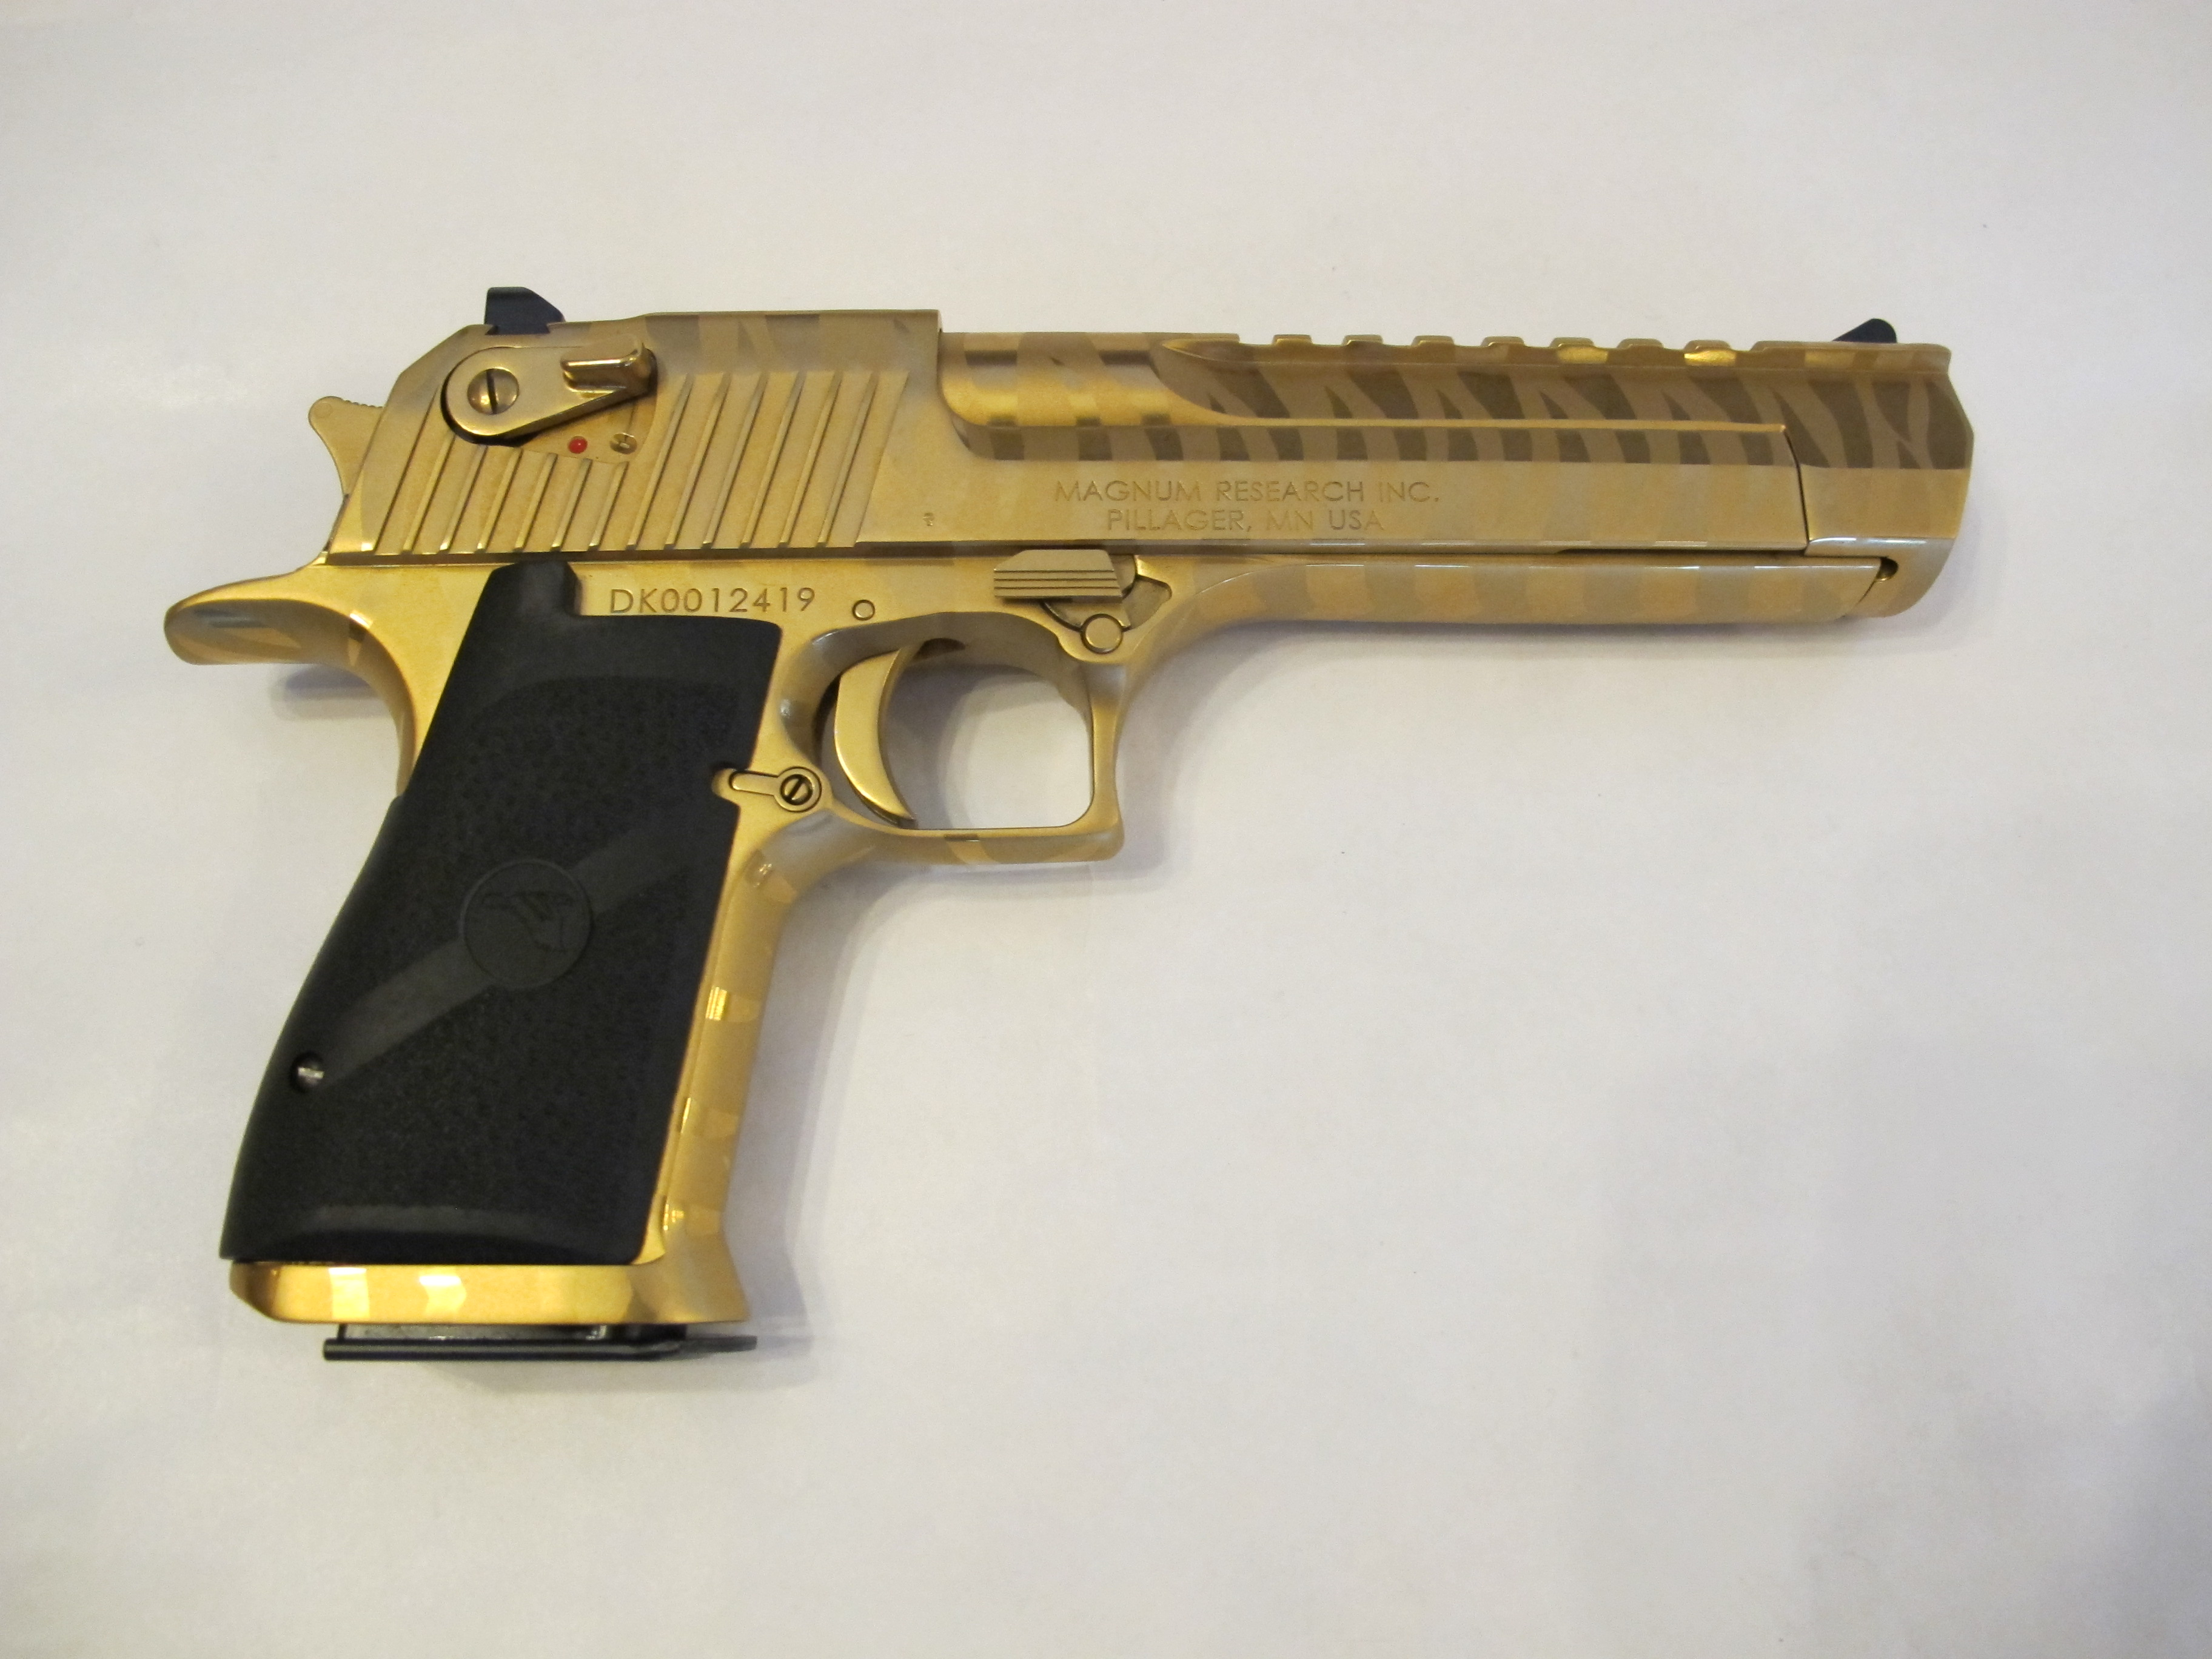 DESERT EAGLE Titanium Gold Tiger Stripes 50 AE